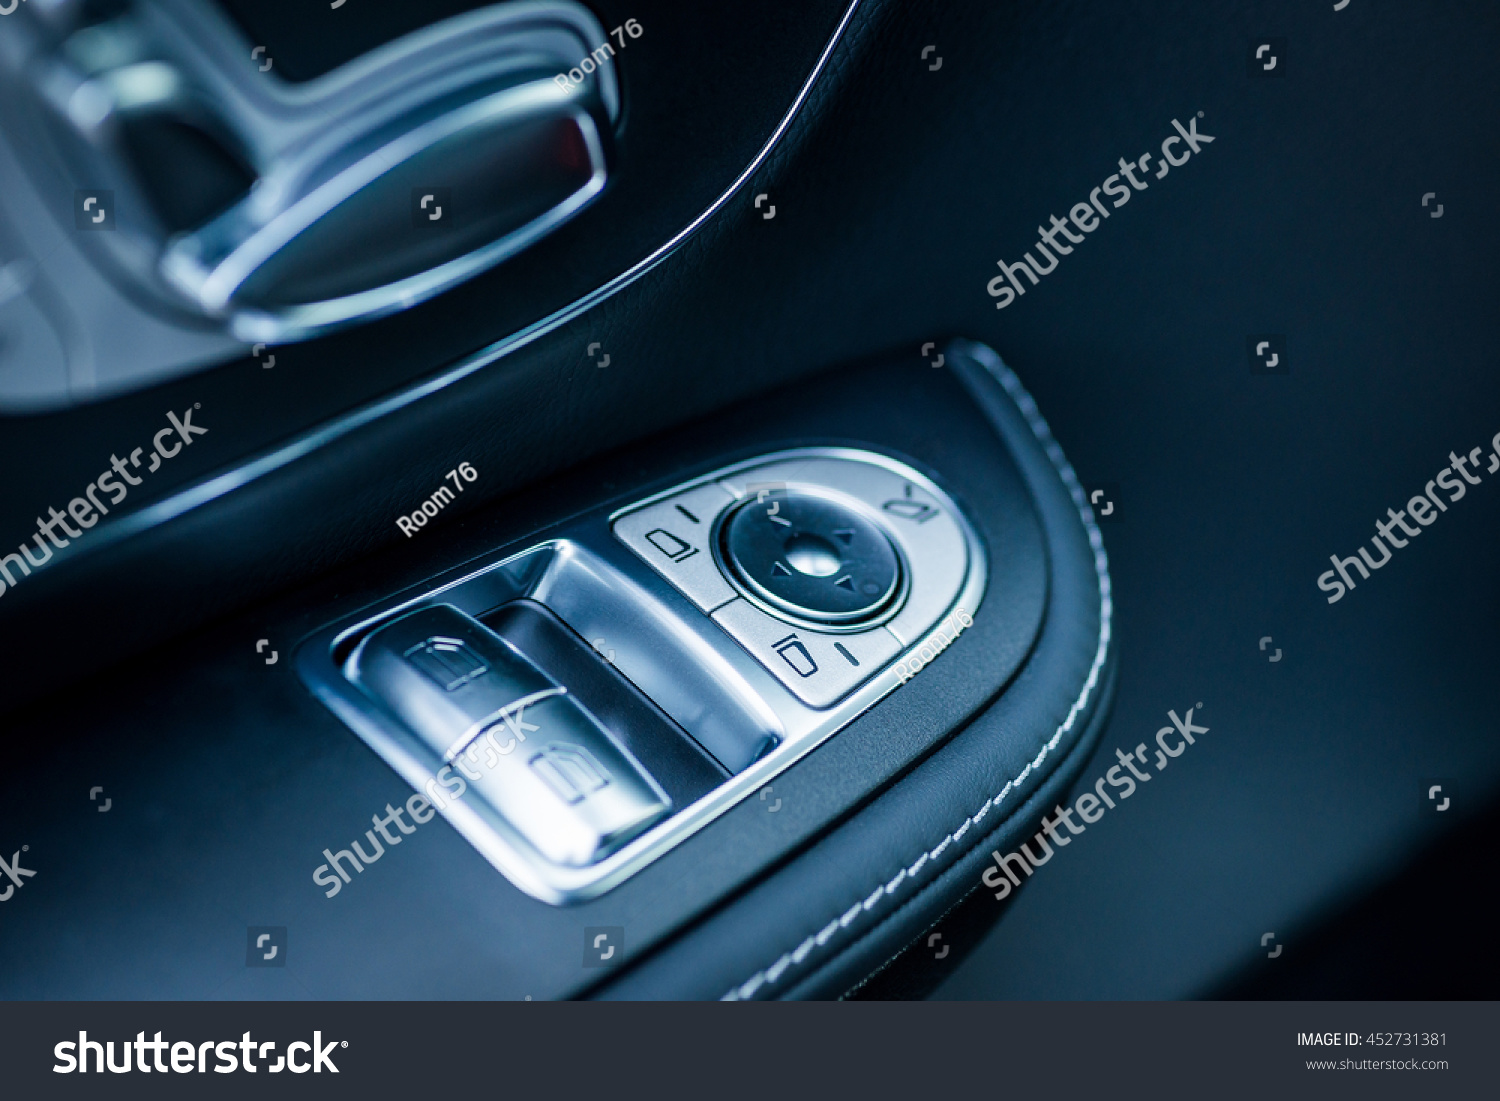 luxury car interior seat window controls stock photo 452731381 shutterstock. Black Bedroom Furniture Sets. Home Design Ideas